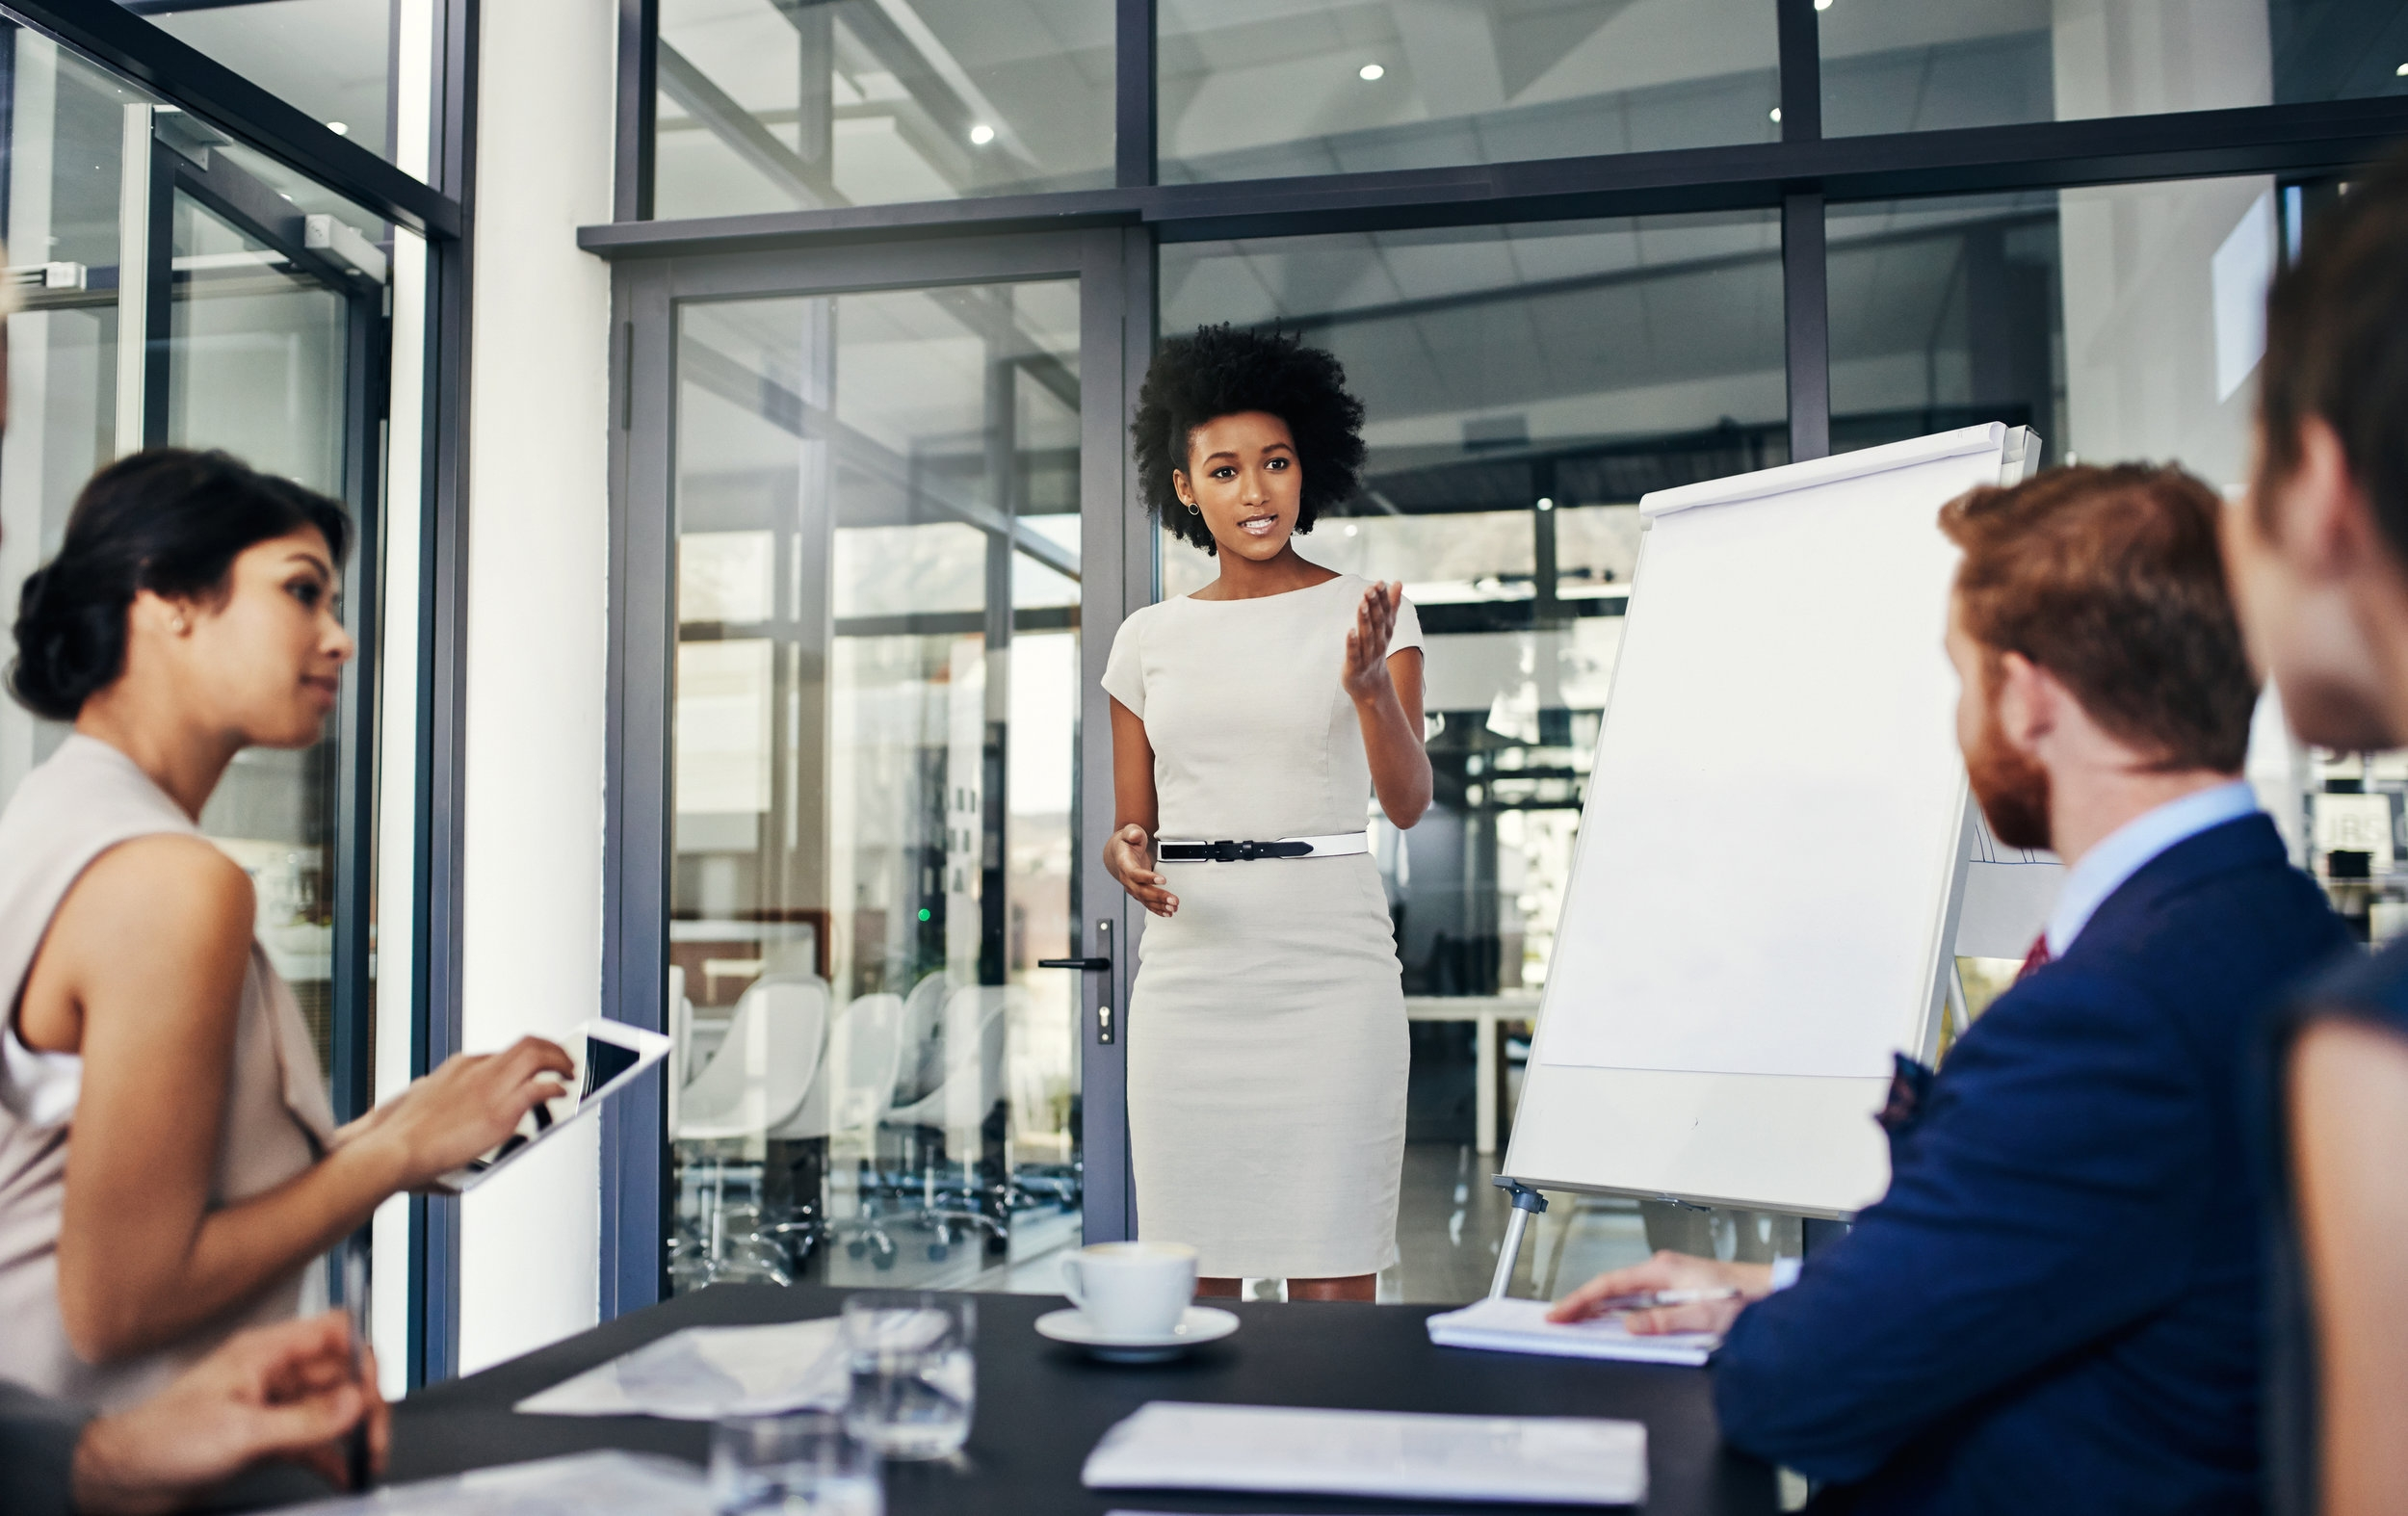 RELATIONAL PRESENTATIONS: DELIVER CONTENT IN A POWERFUL AND ENGAGING WAY - Learn how to present your ideas in a clear, compelling way to ensure full engagement and buy-in from your audiences.